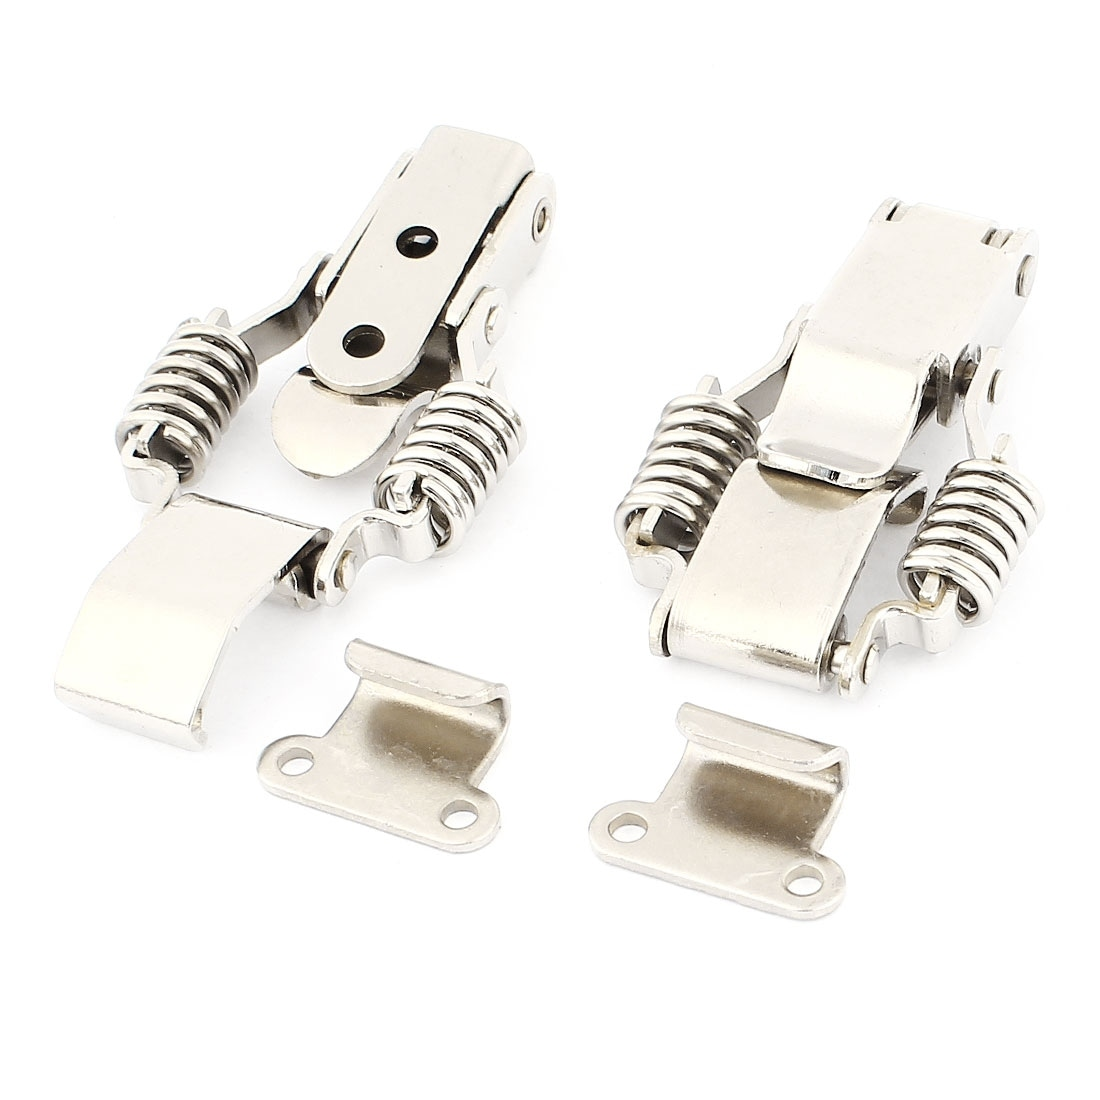 2 Sets Draw Compression Stainless Steel Silver Tone Toggle Latch Catch